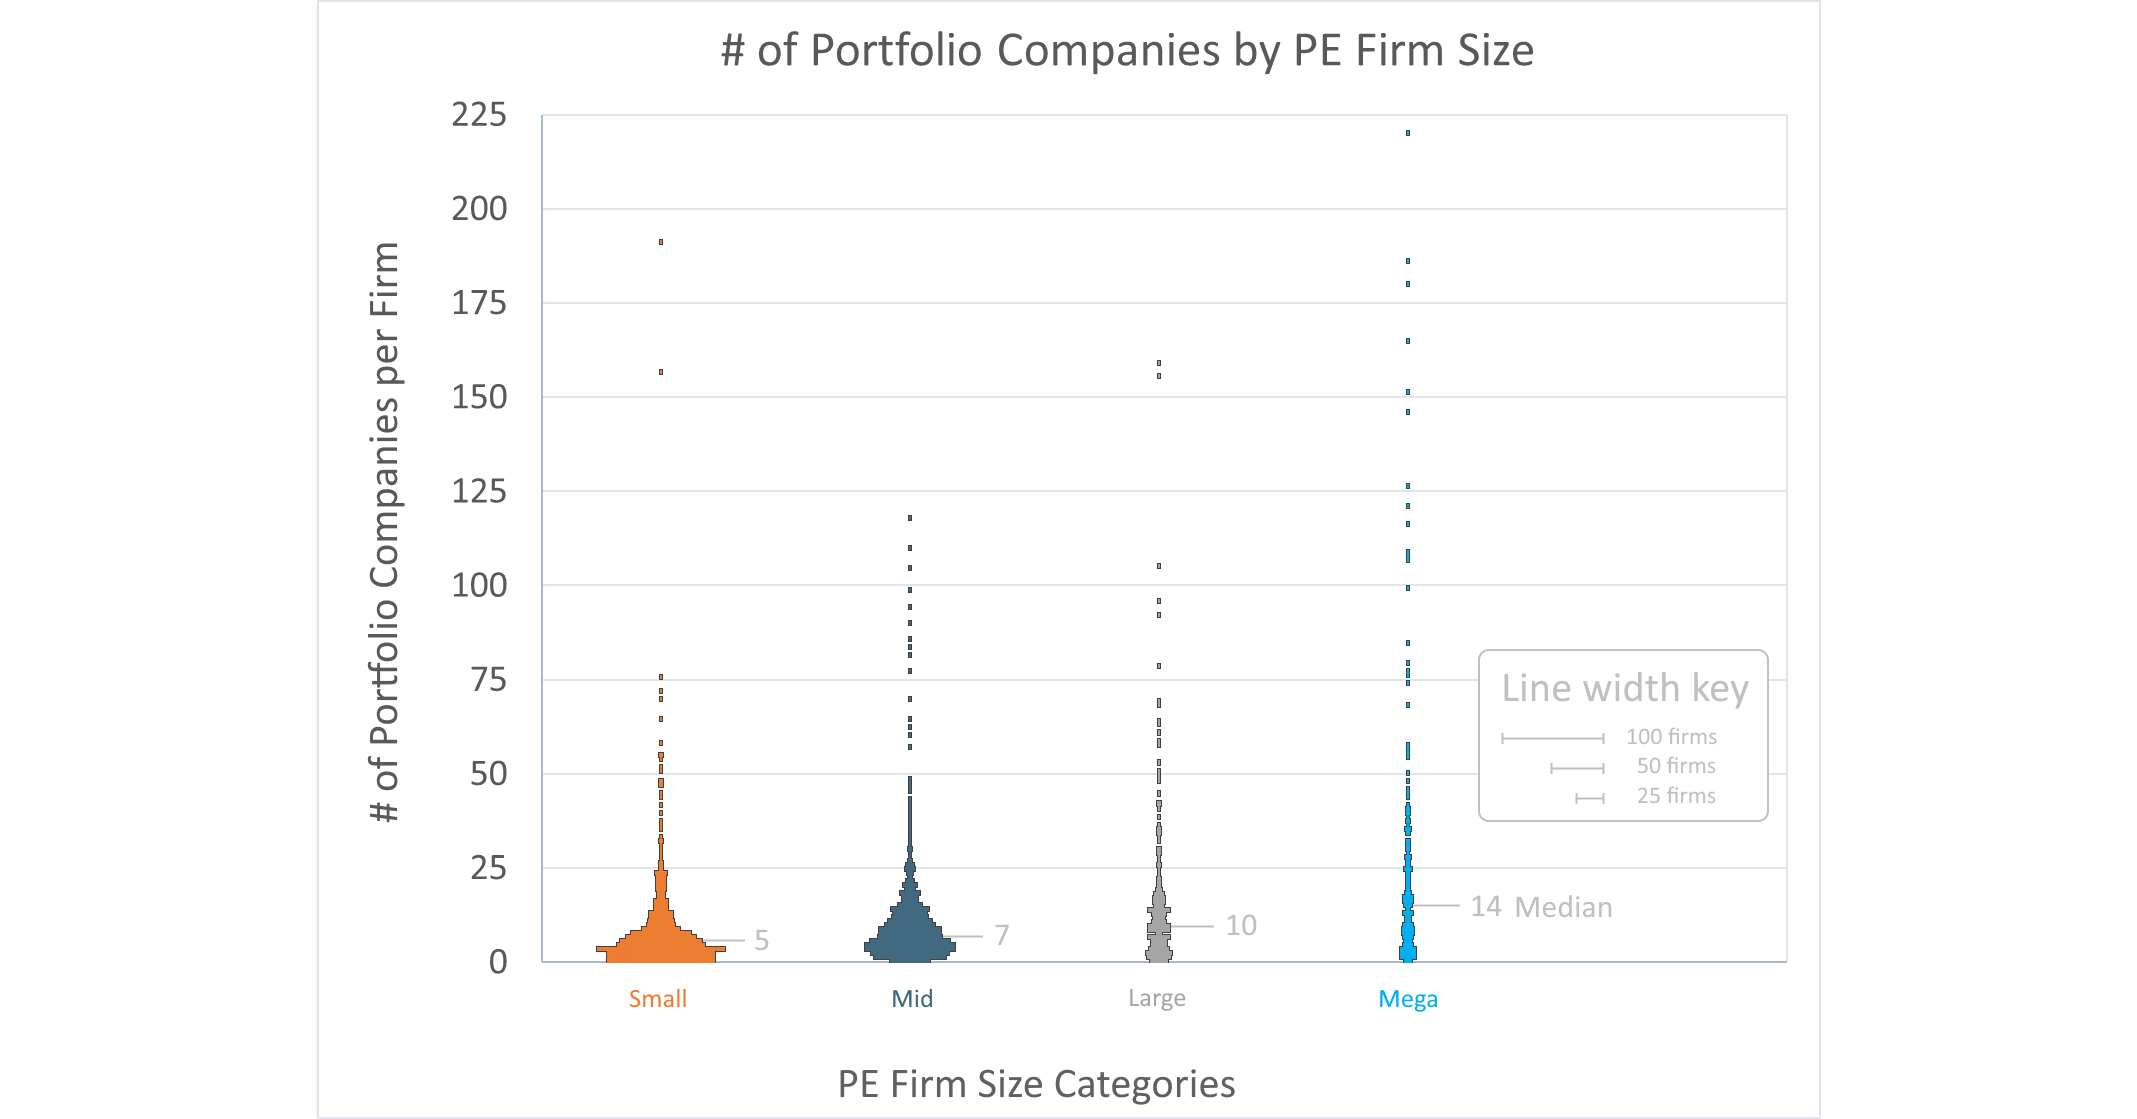 PortCos by PE firm size